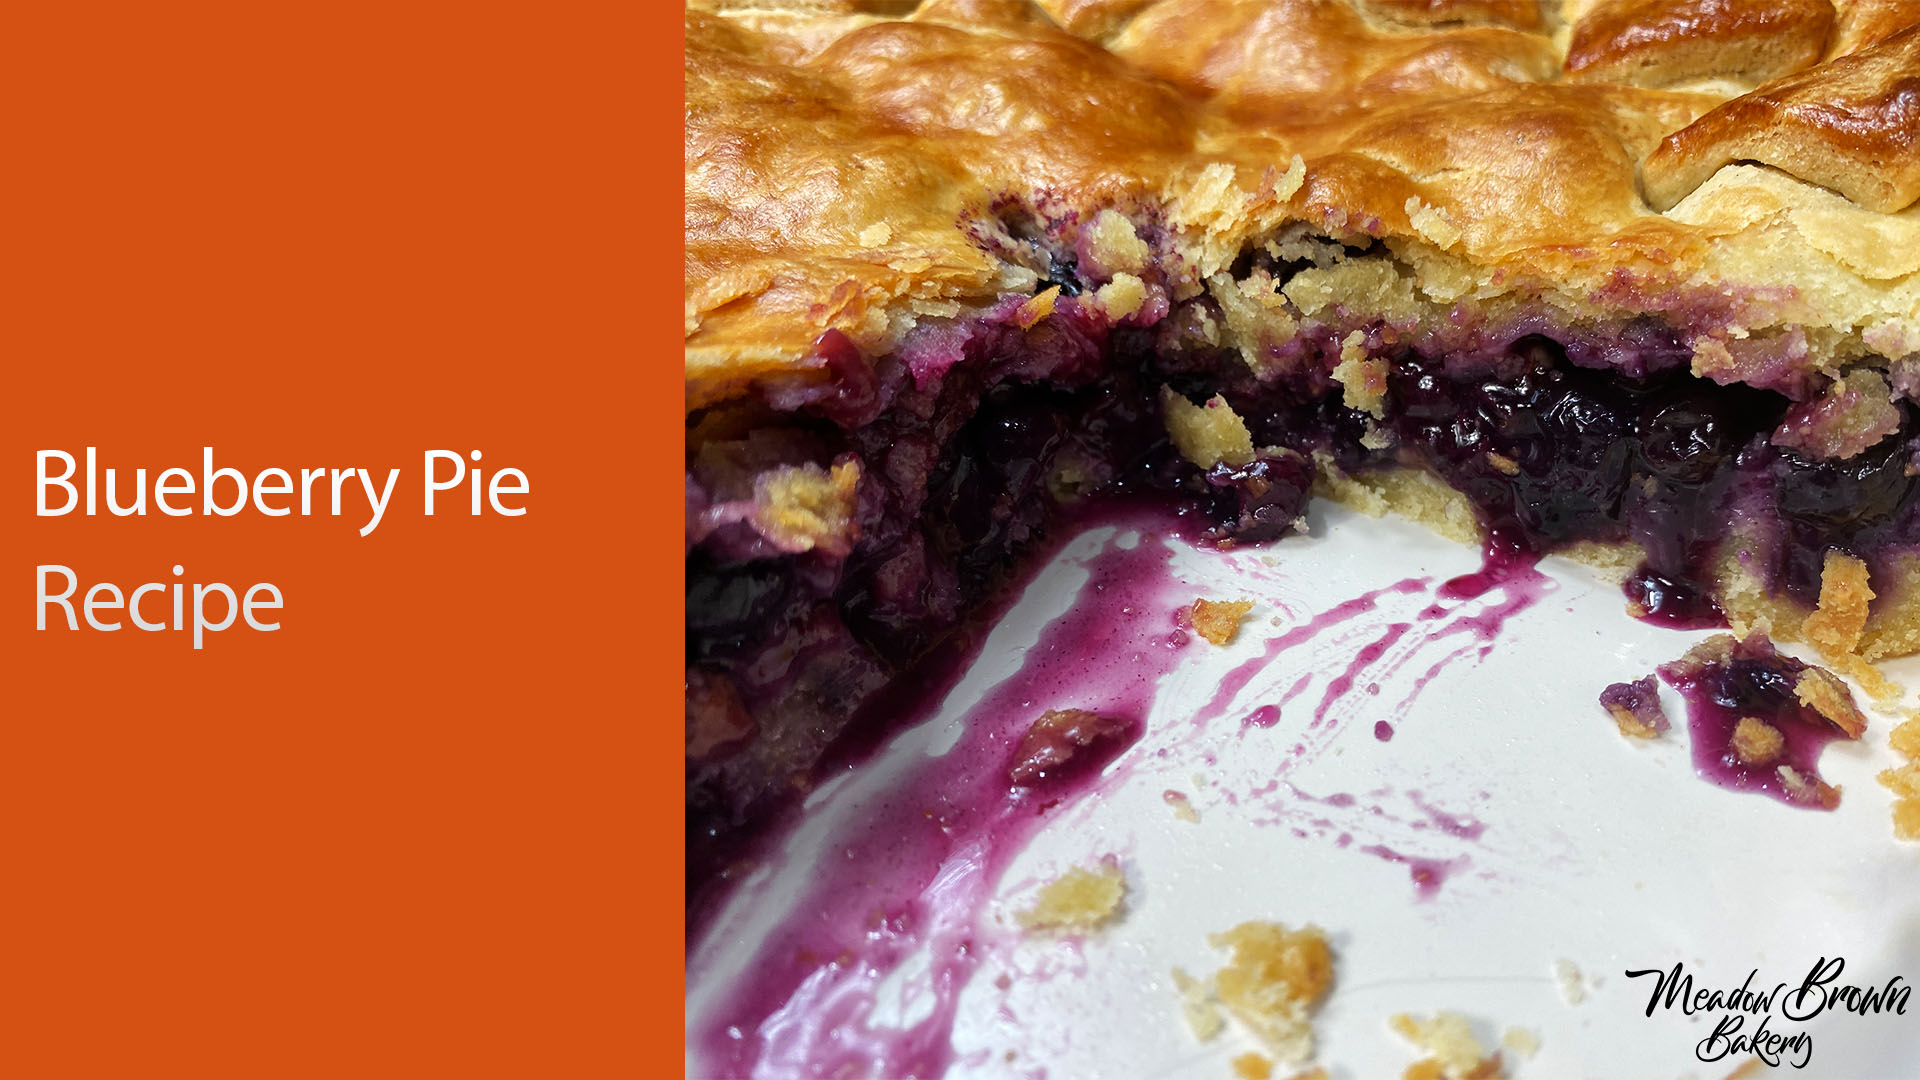 Blueberry pie recipe uk